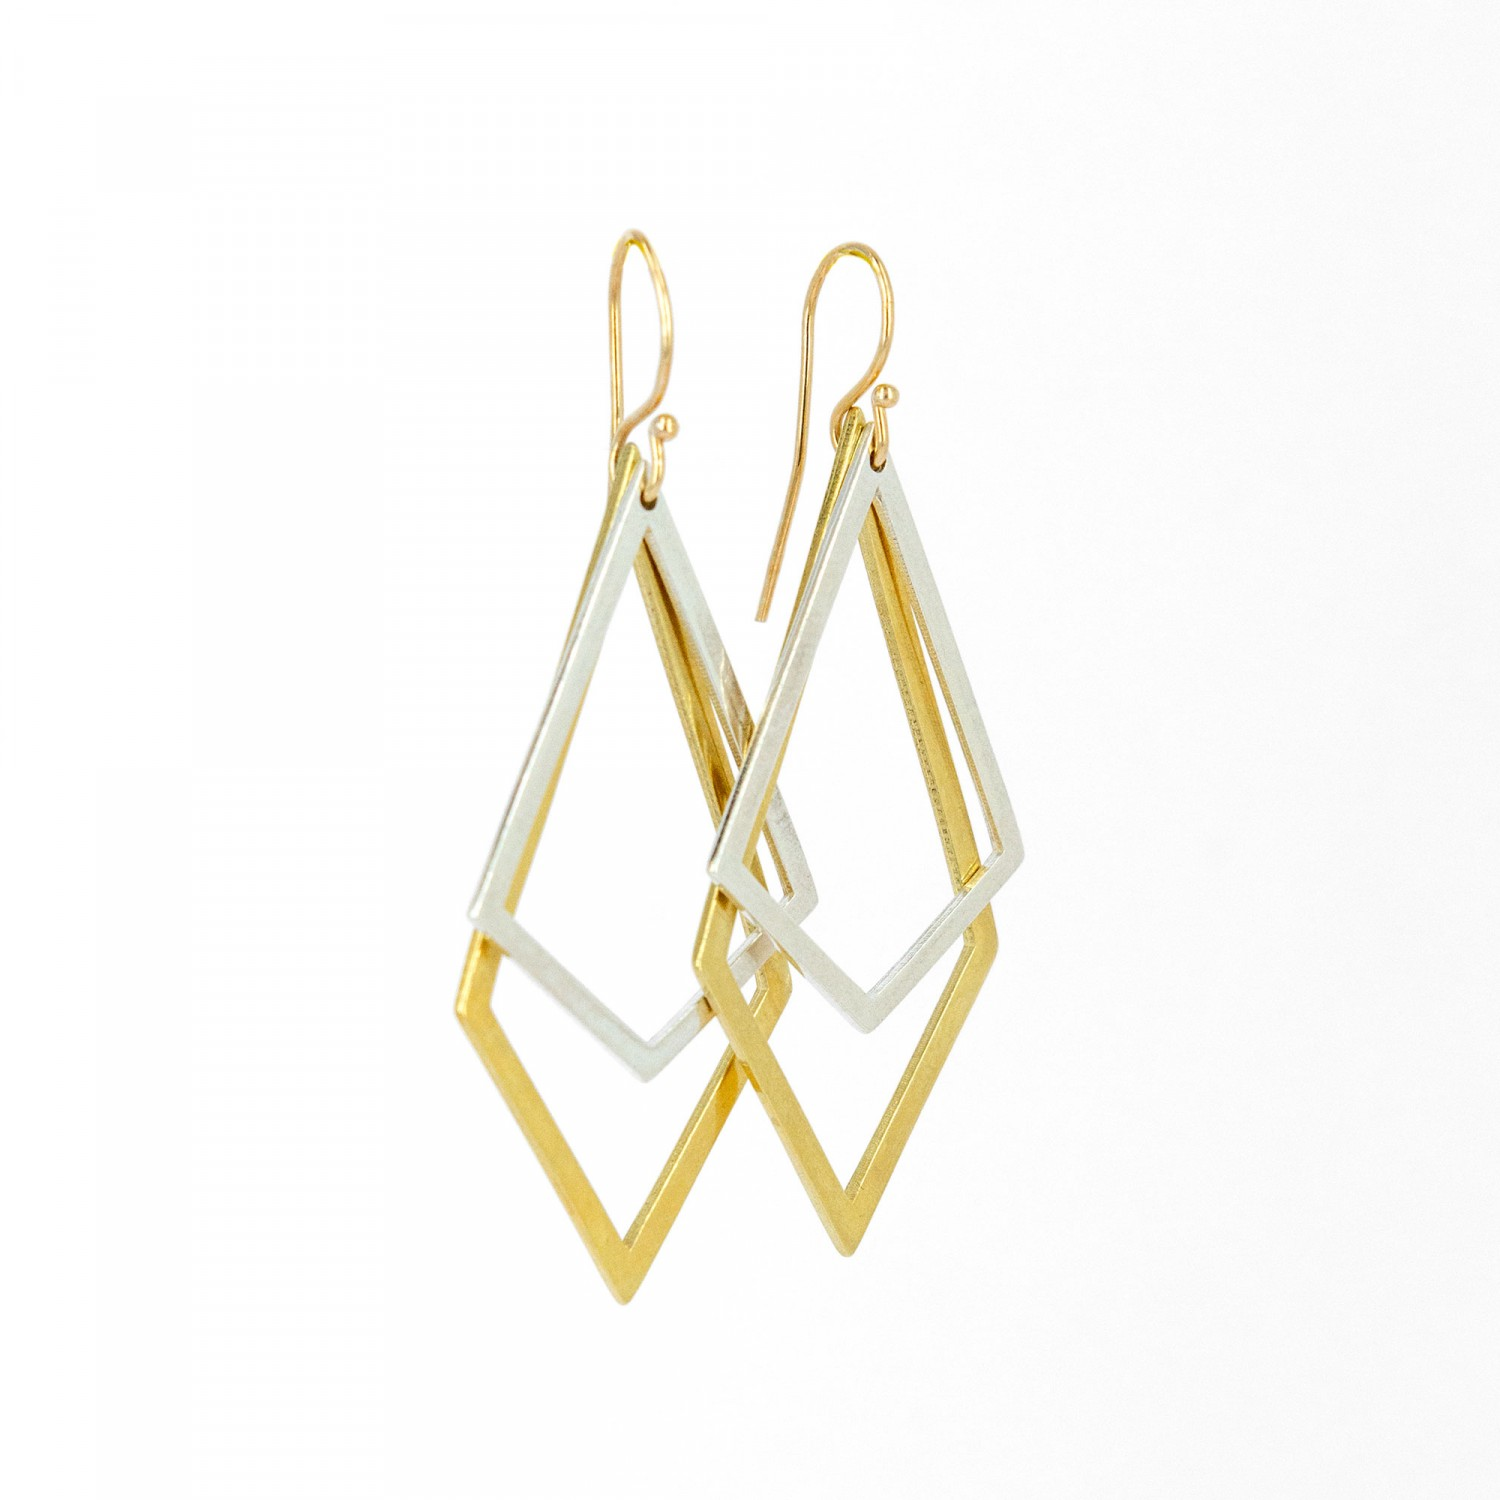 Two Rhombus Earrings